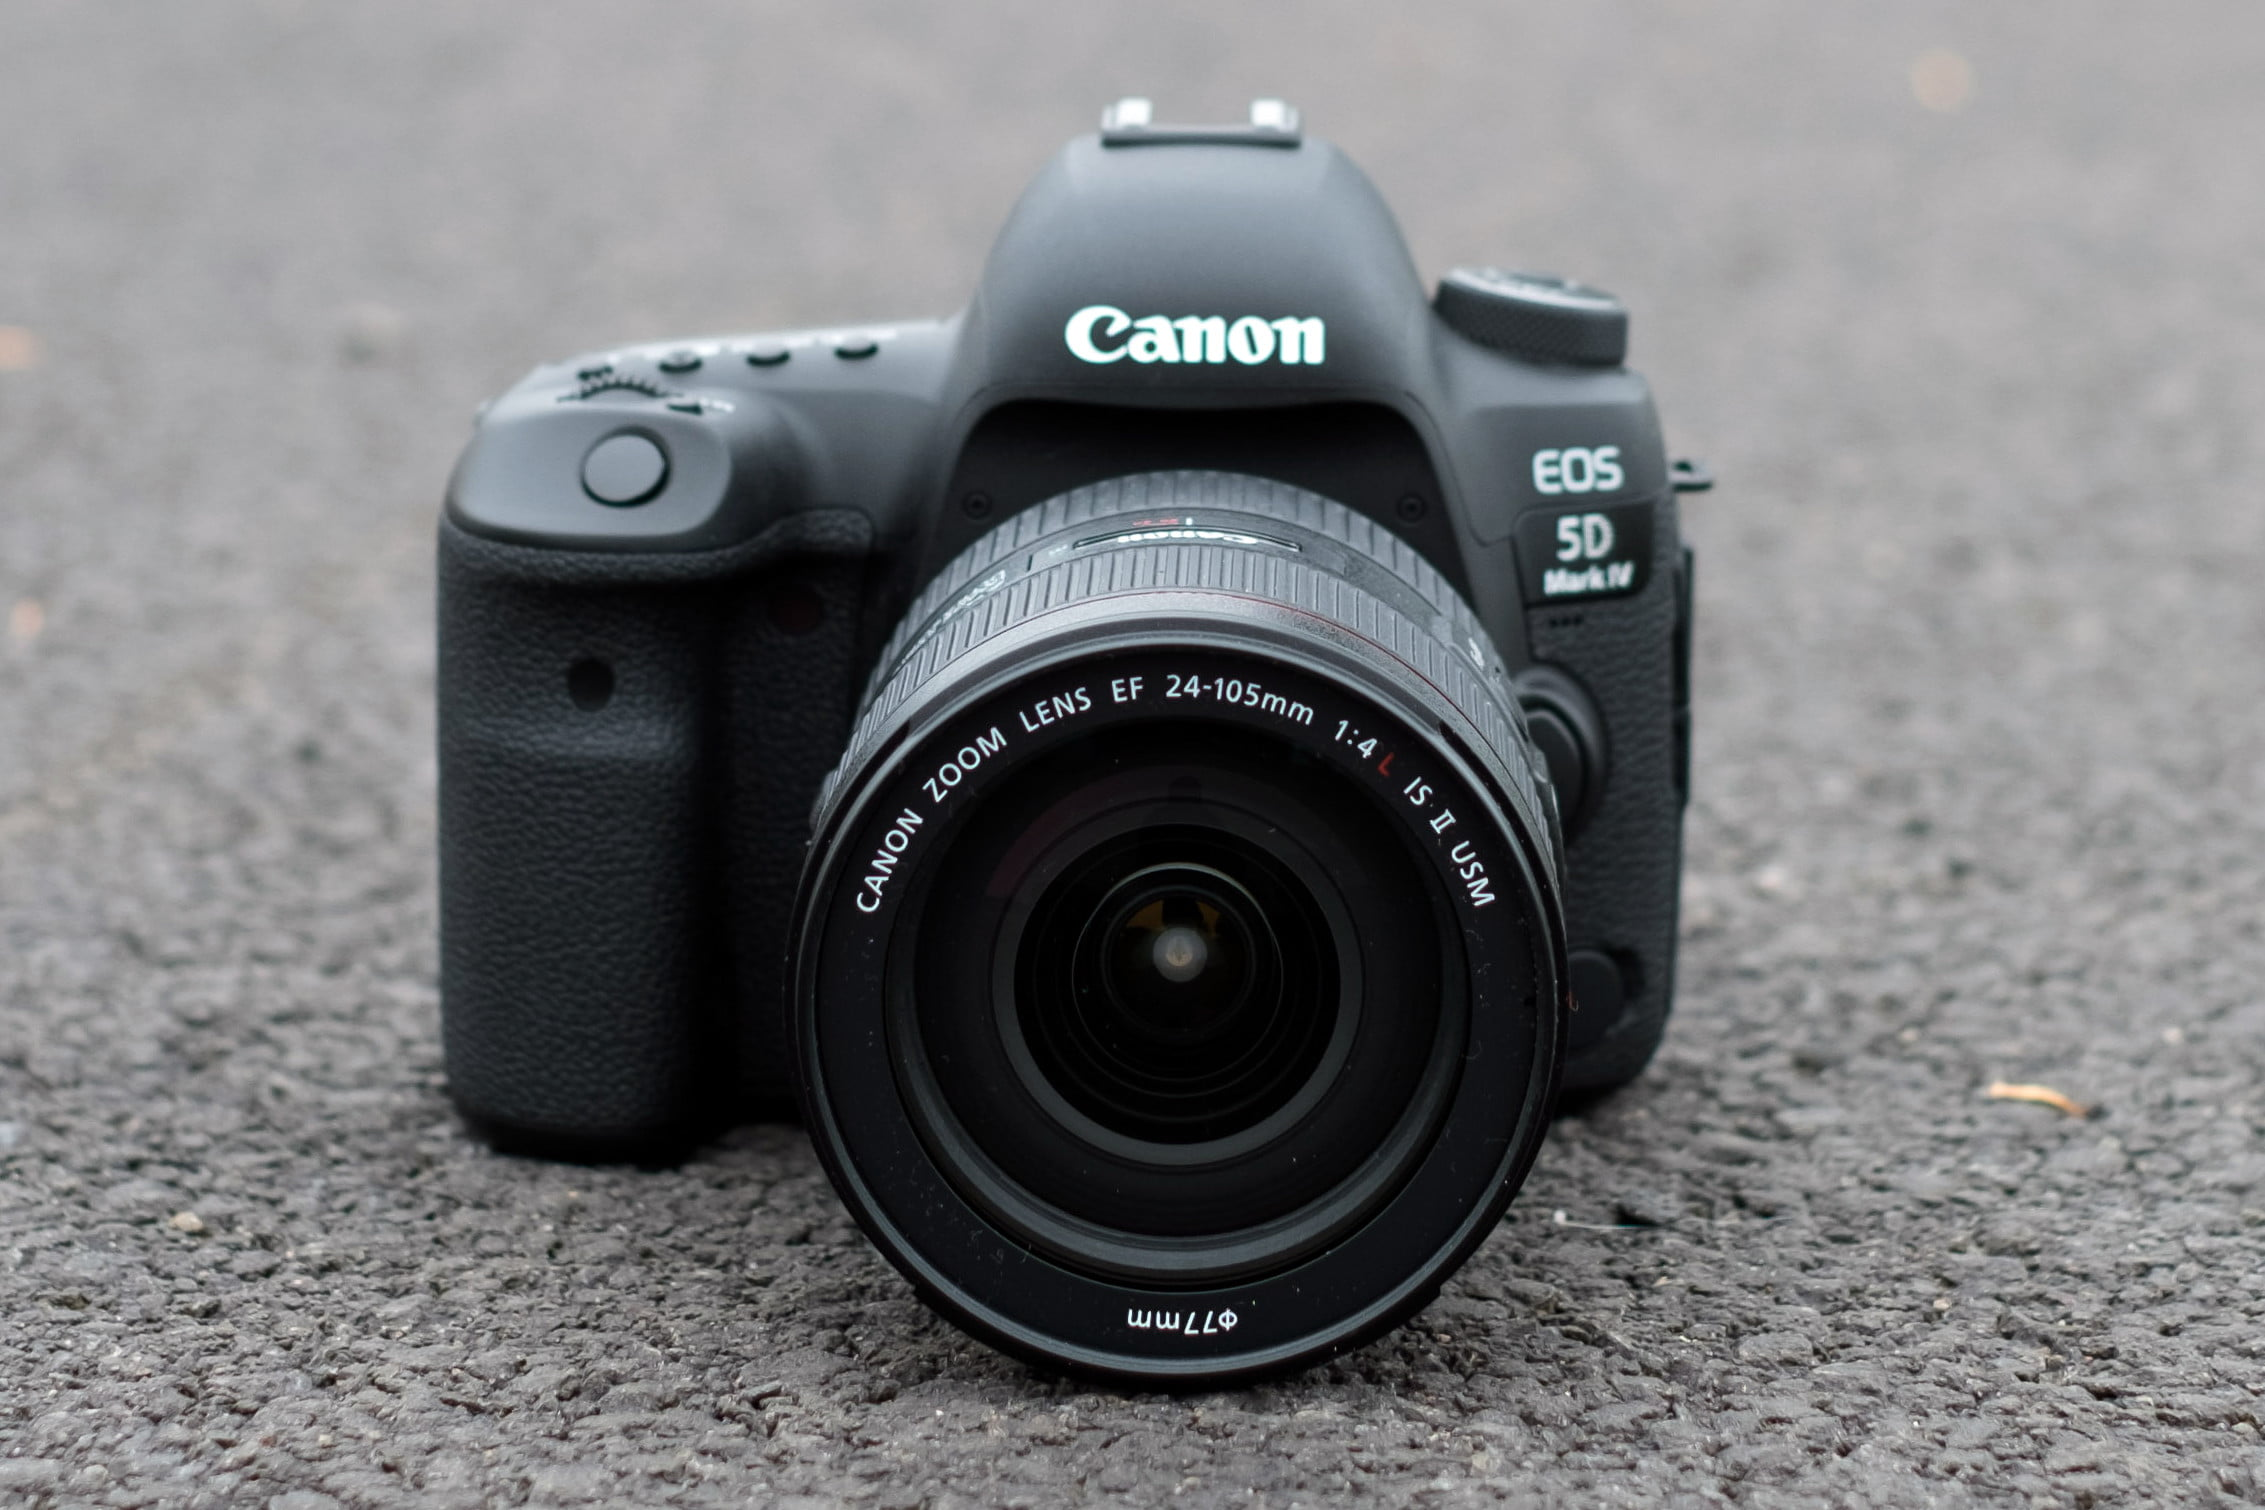 The Best Canon Cameras for 2019 | Digital Trends